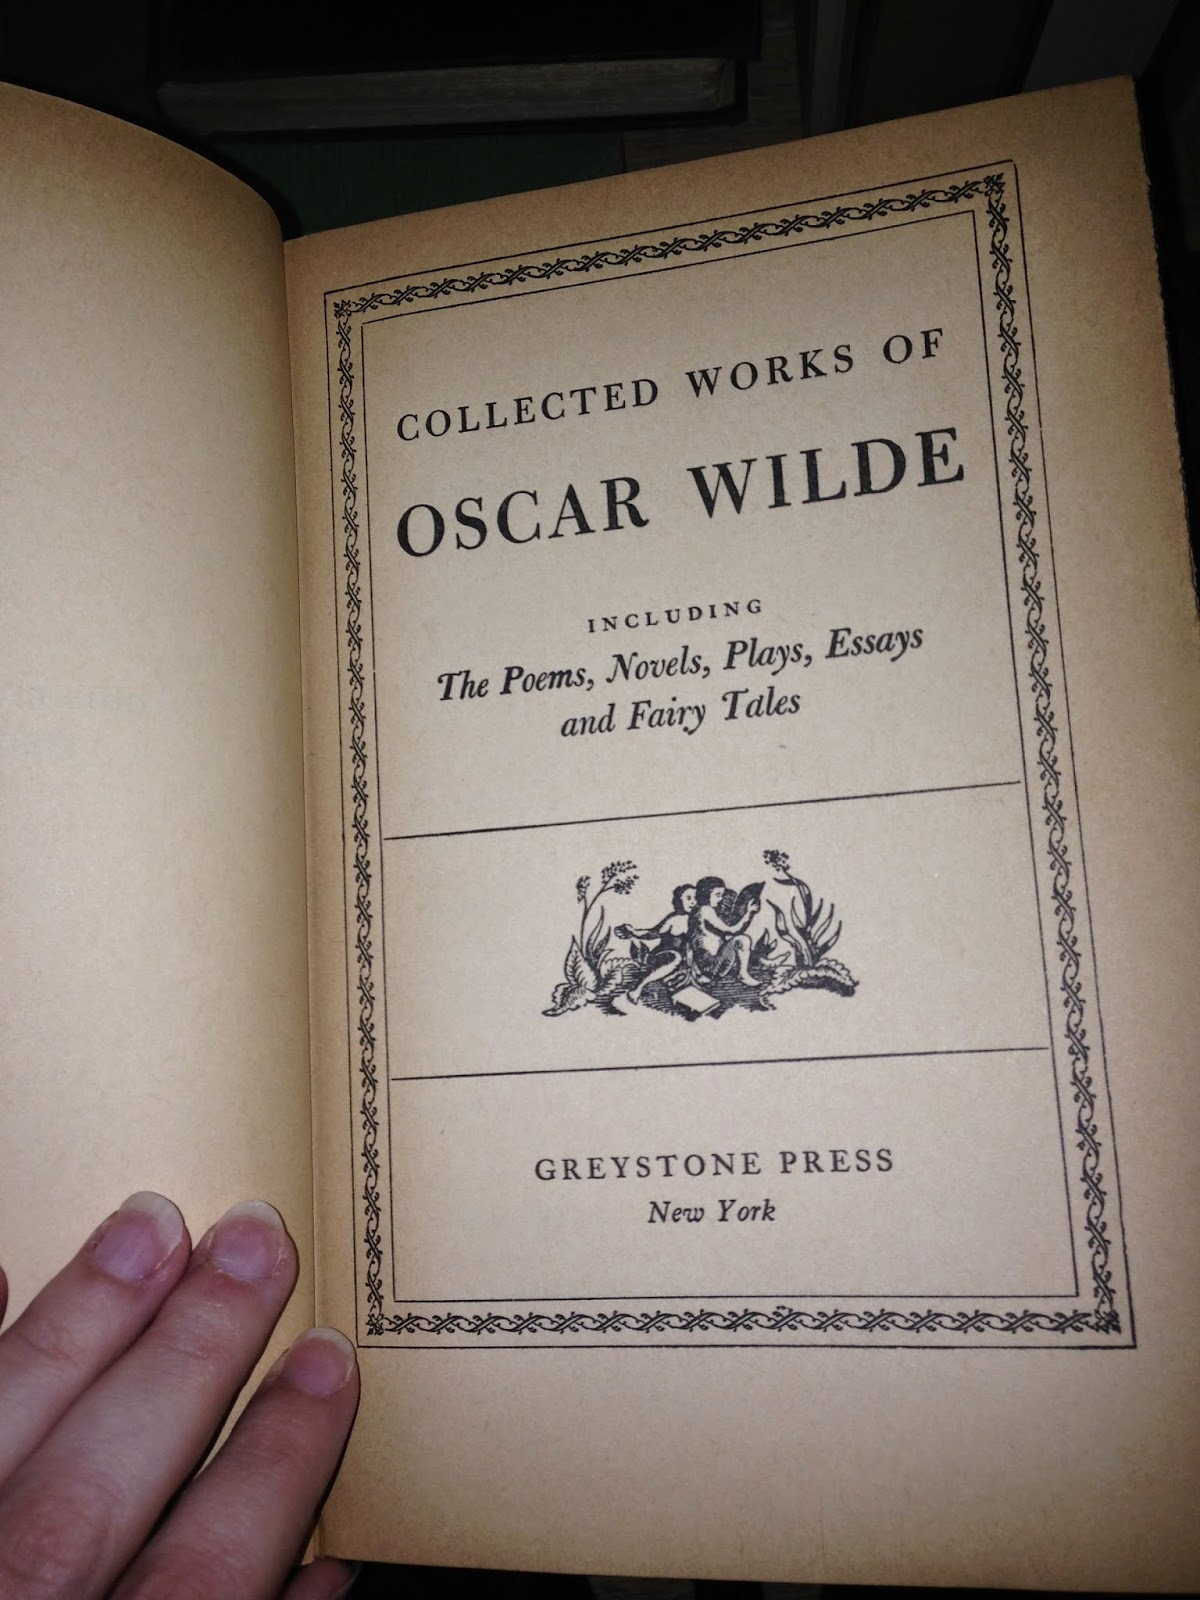 the influences of oscar wilde essay Who were oscar wilde's main influences and what other literary greats can he be compared to the answer to these questions would be much appreciated.